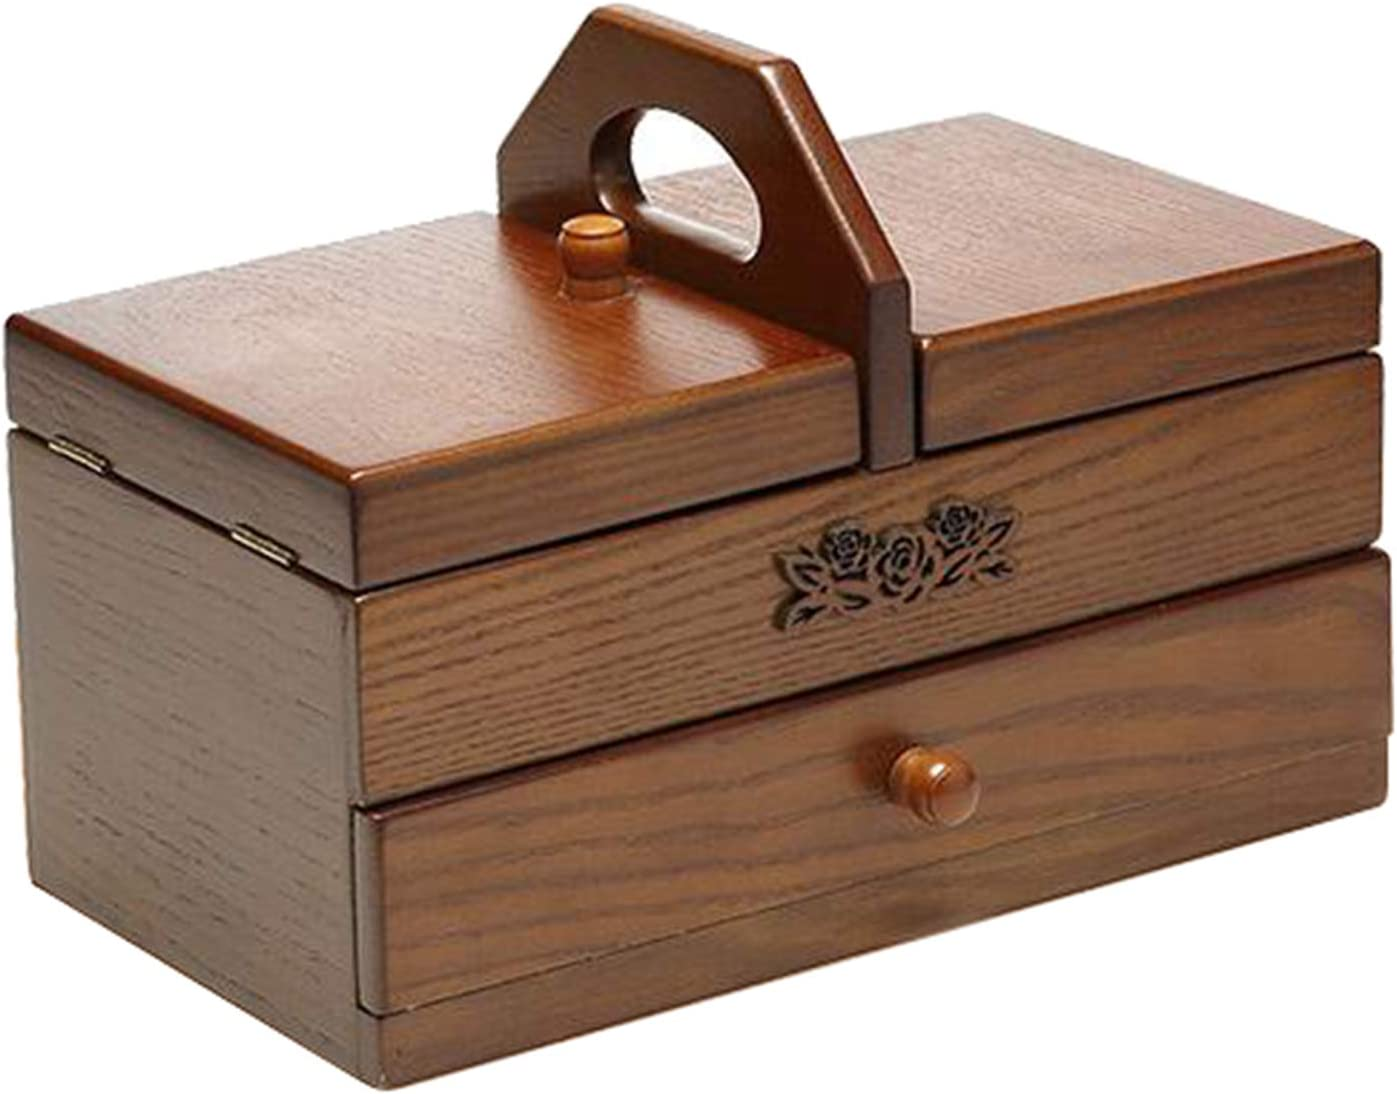 oshhni Product Expand Case Wooden Max 42% OFF Sewing Box Jewelry Craft Basket Storag